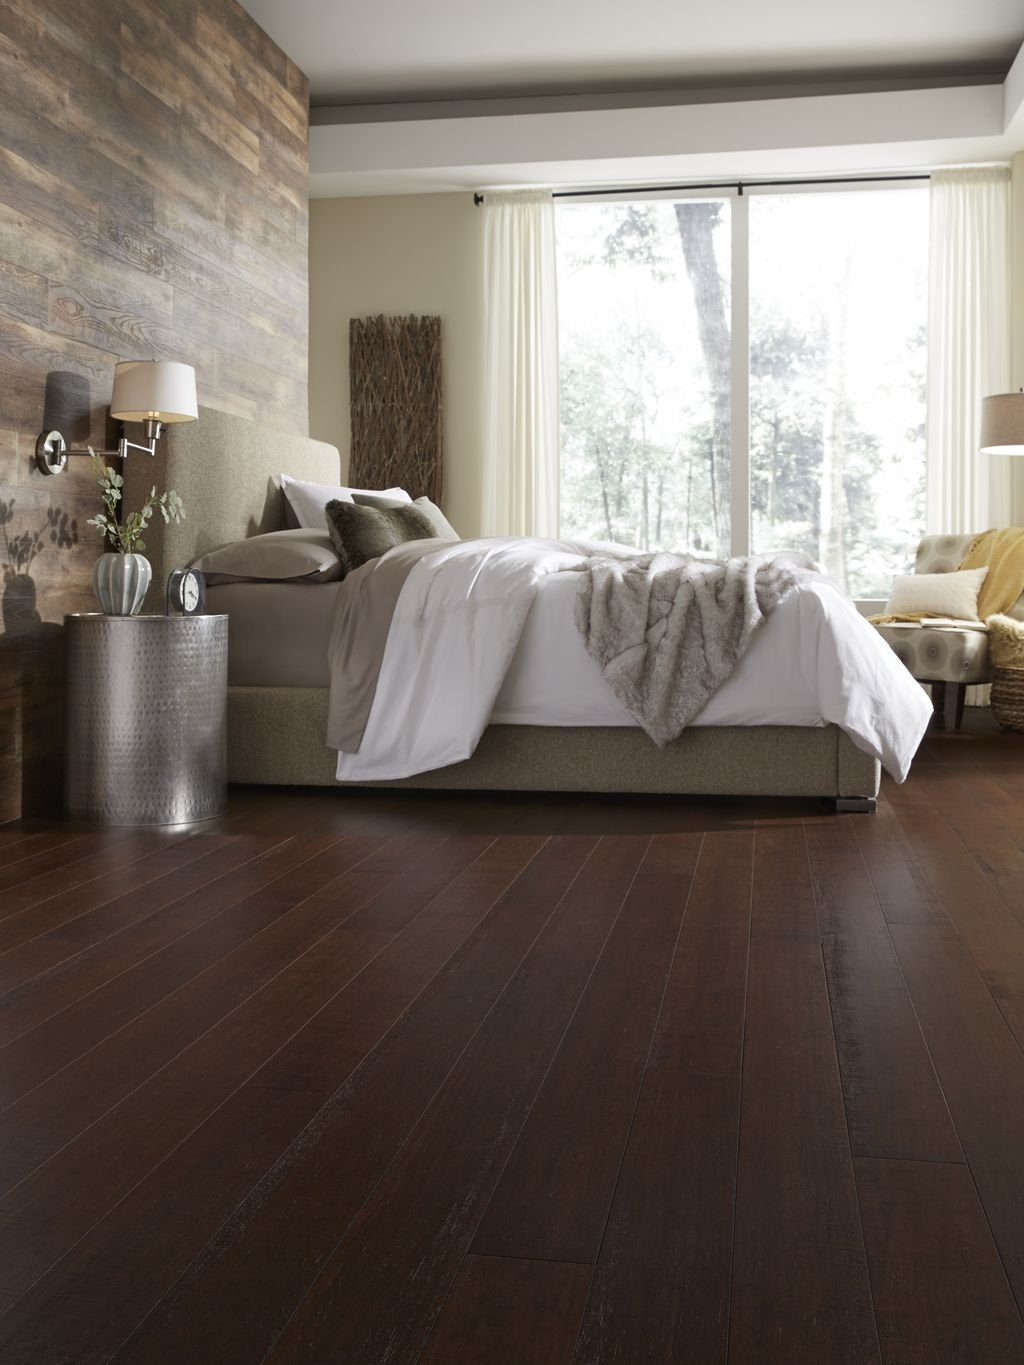 Totally Inspiring Bamboo Flooring Design Ideas33